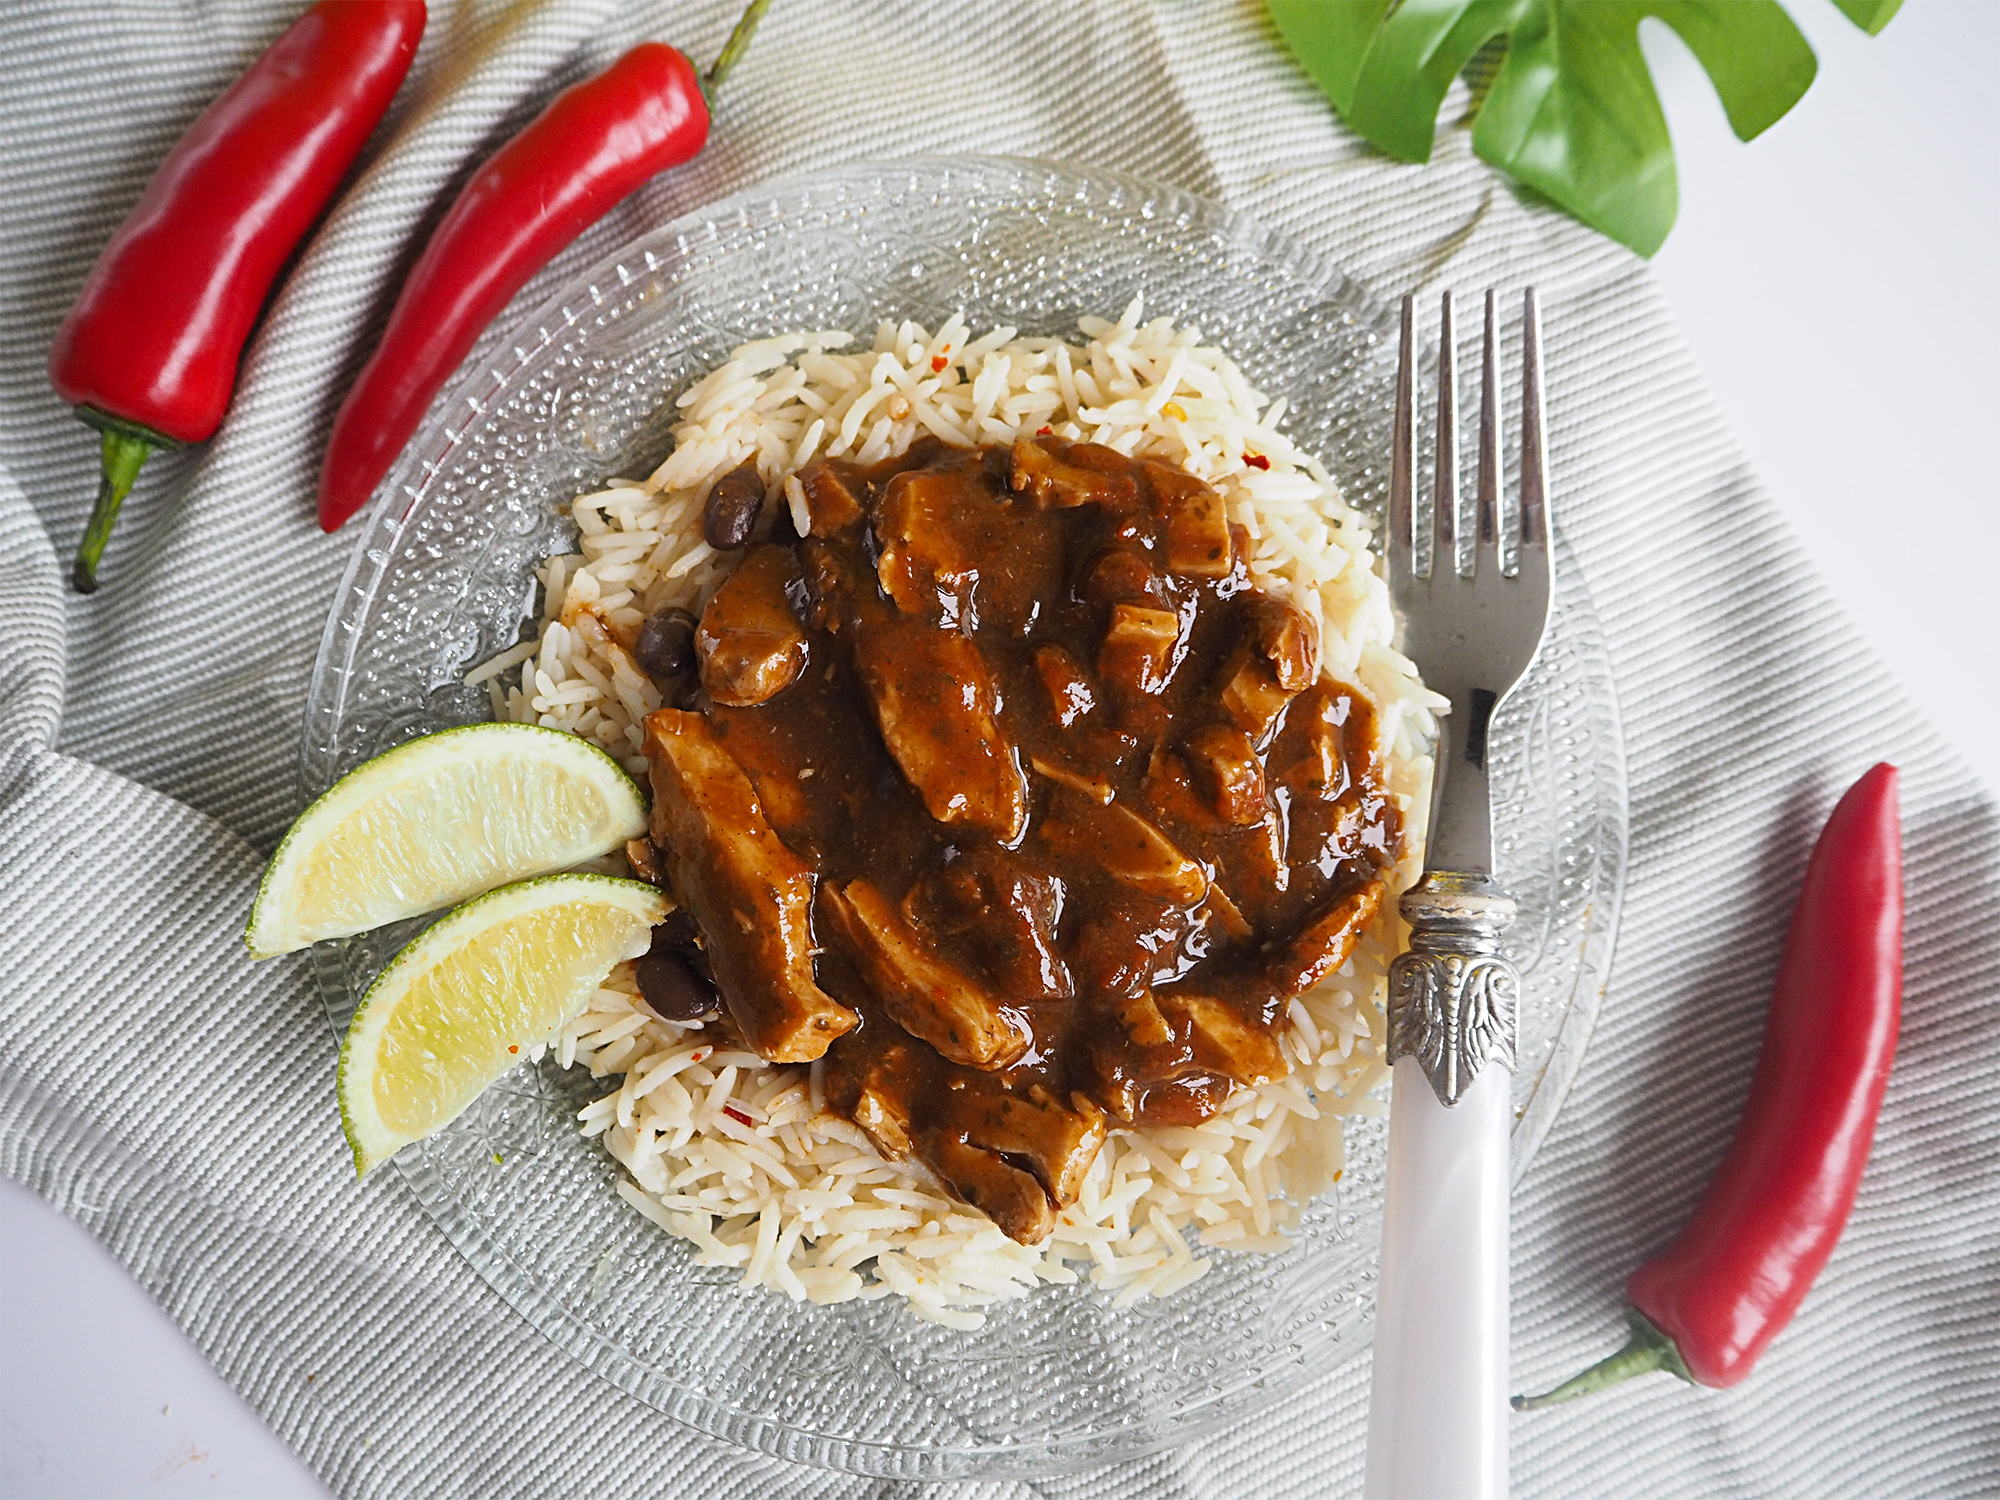 Spicing up lunchtime with Weight Watchers meal plans